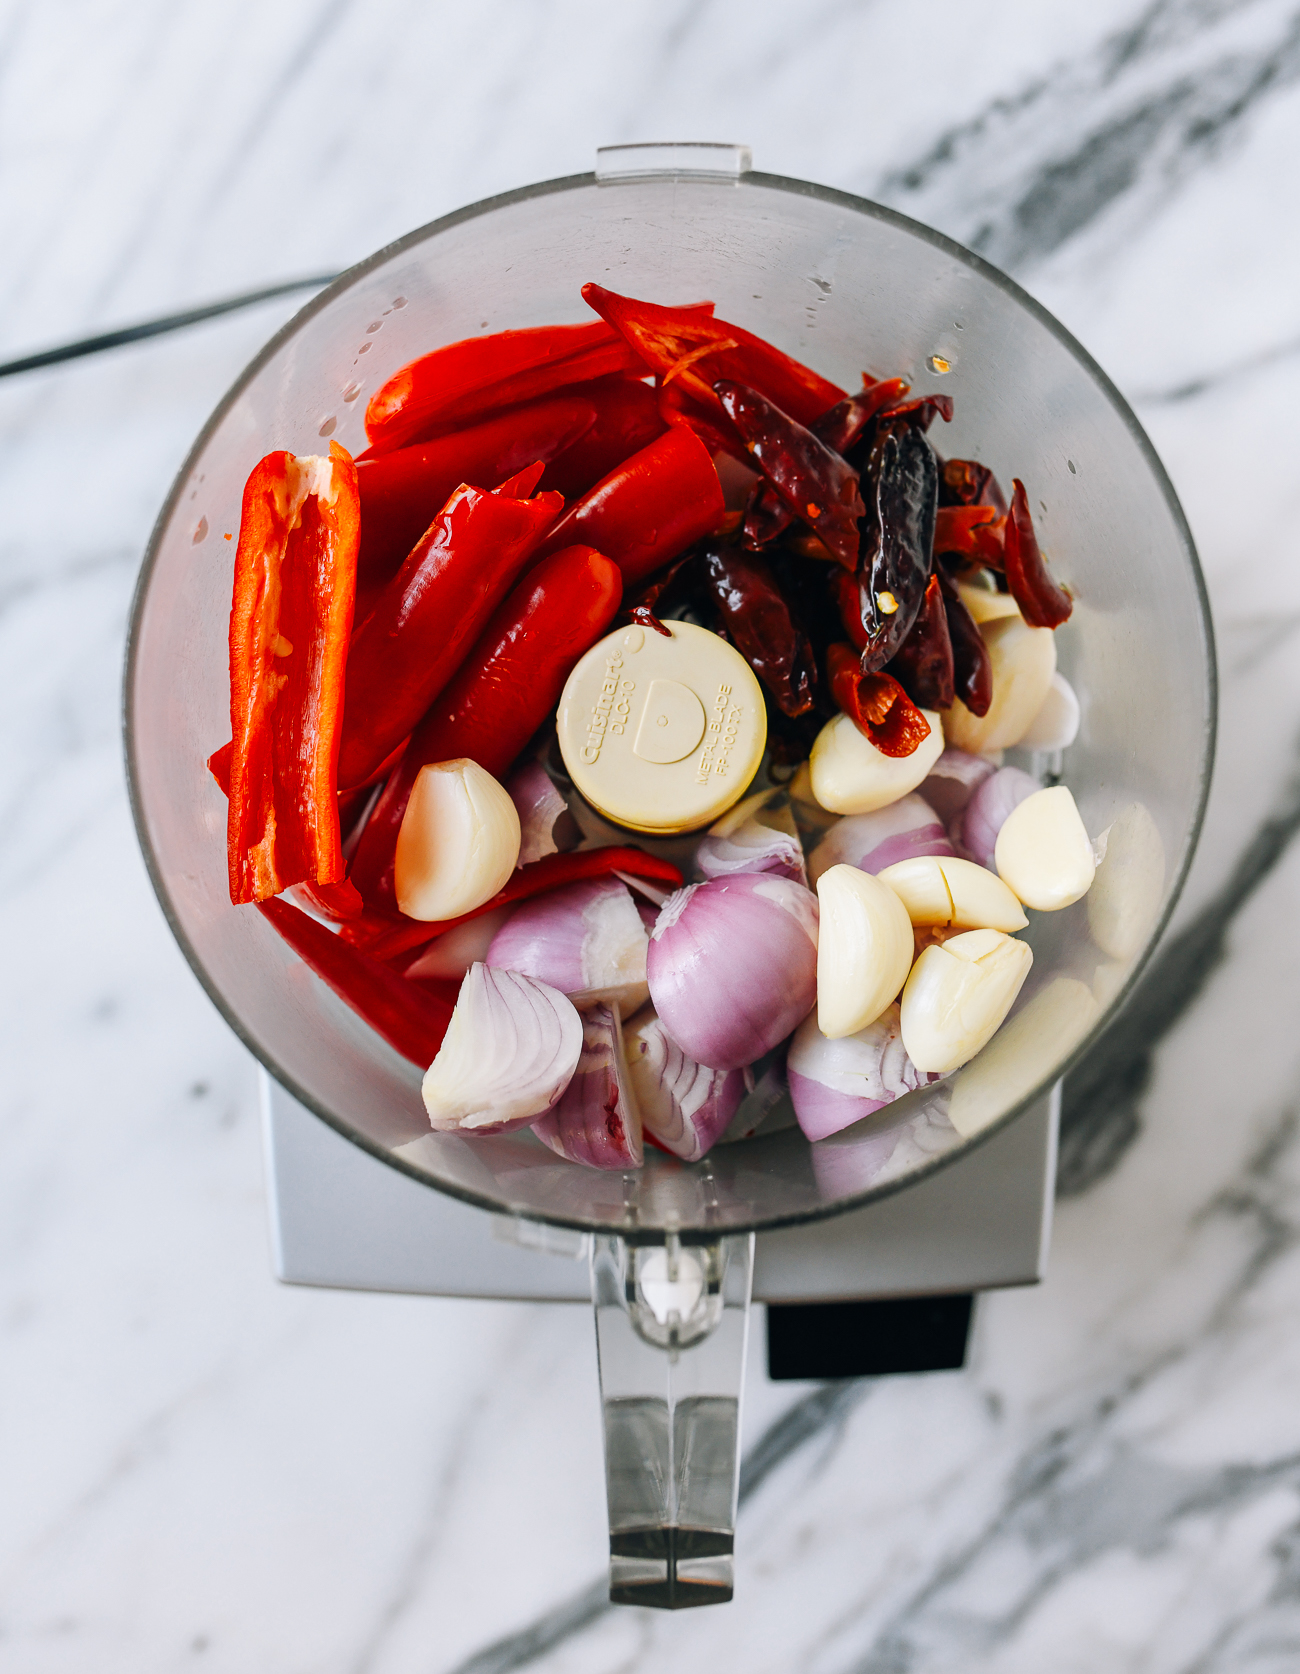 Chilies, garlic, and shallots in food processor